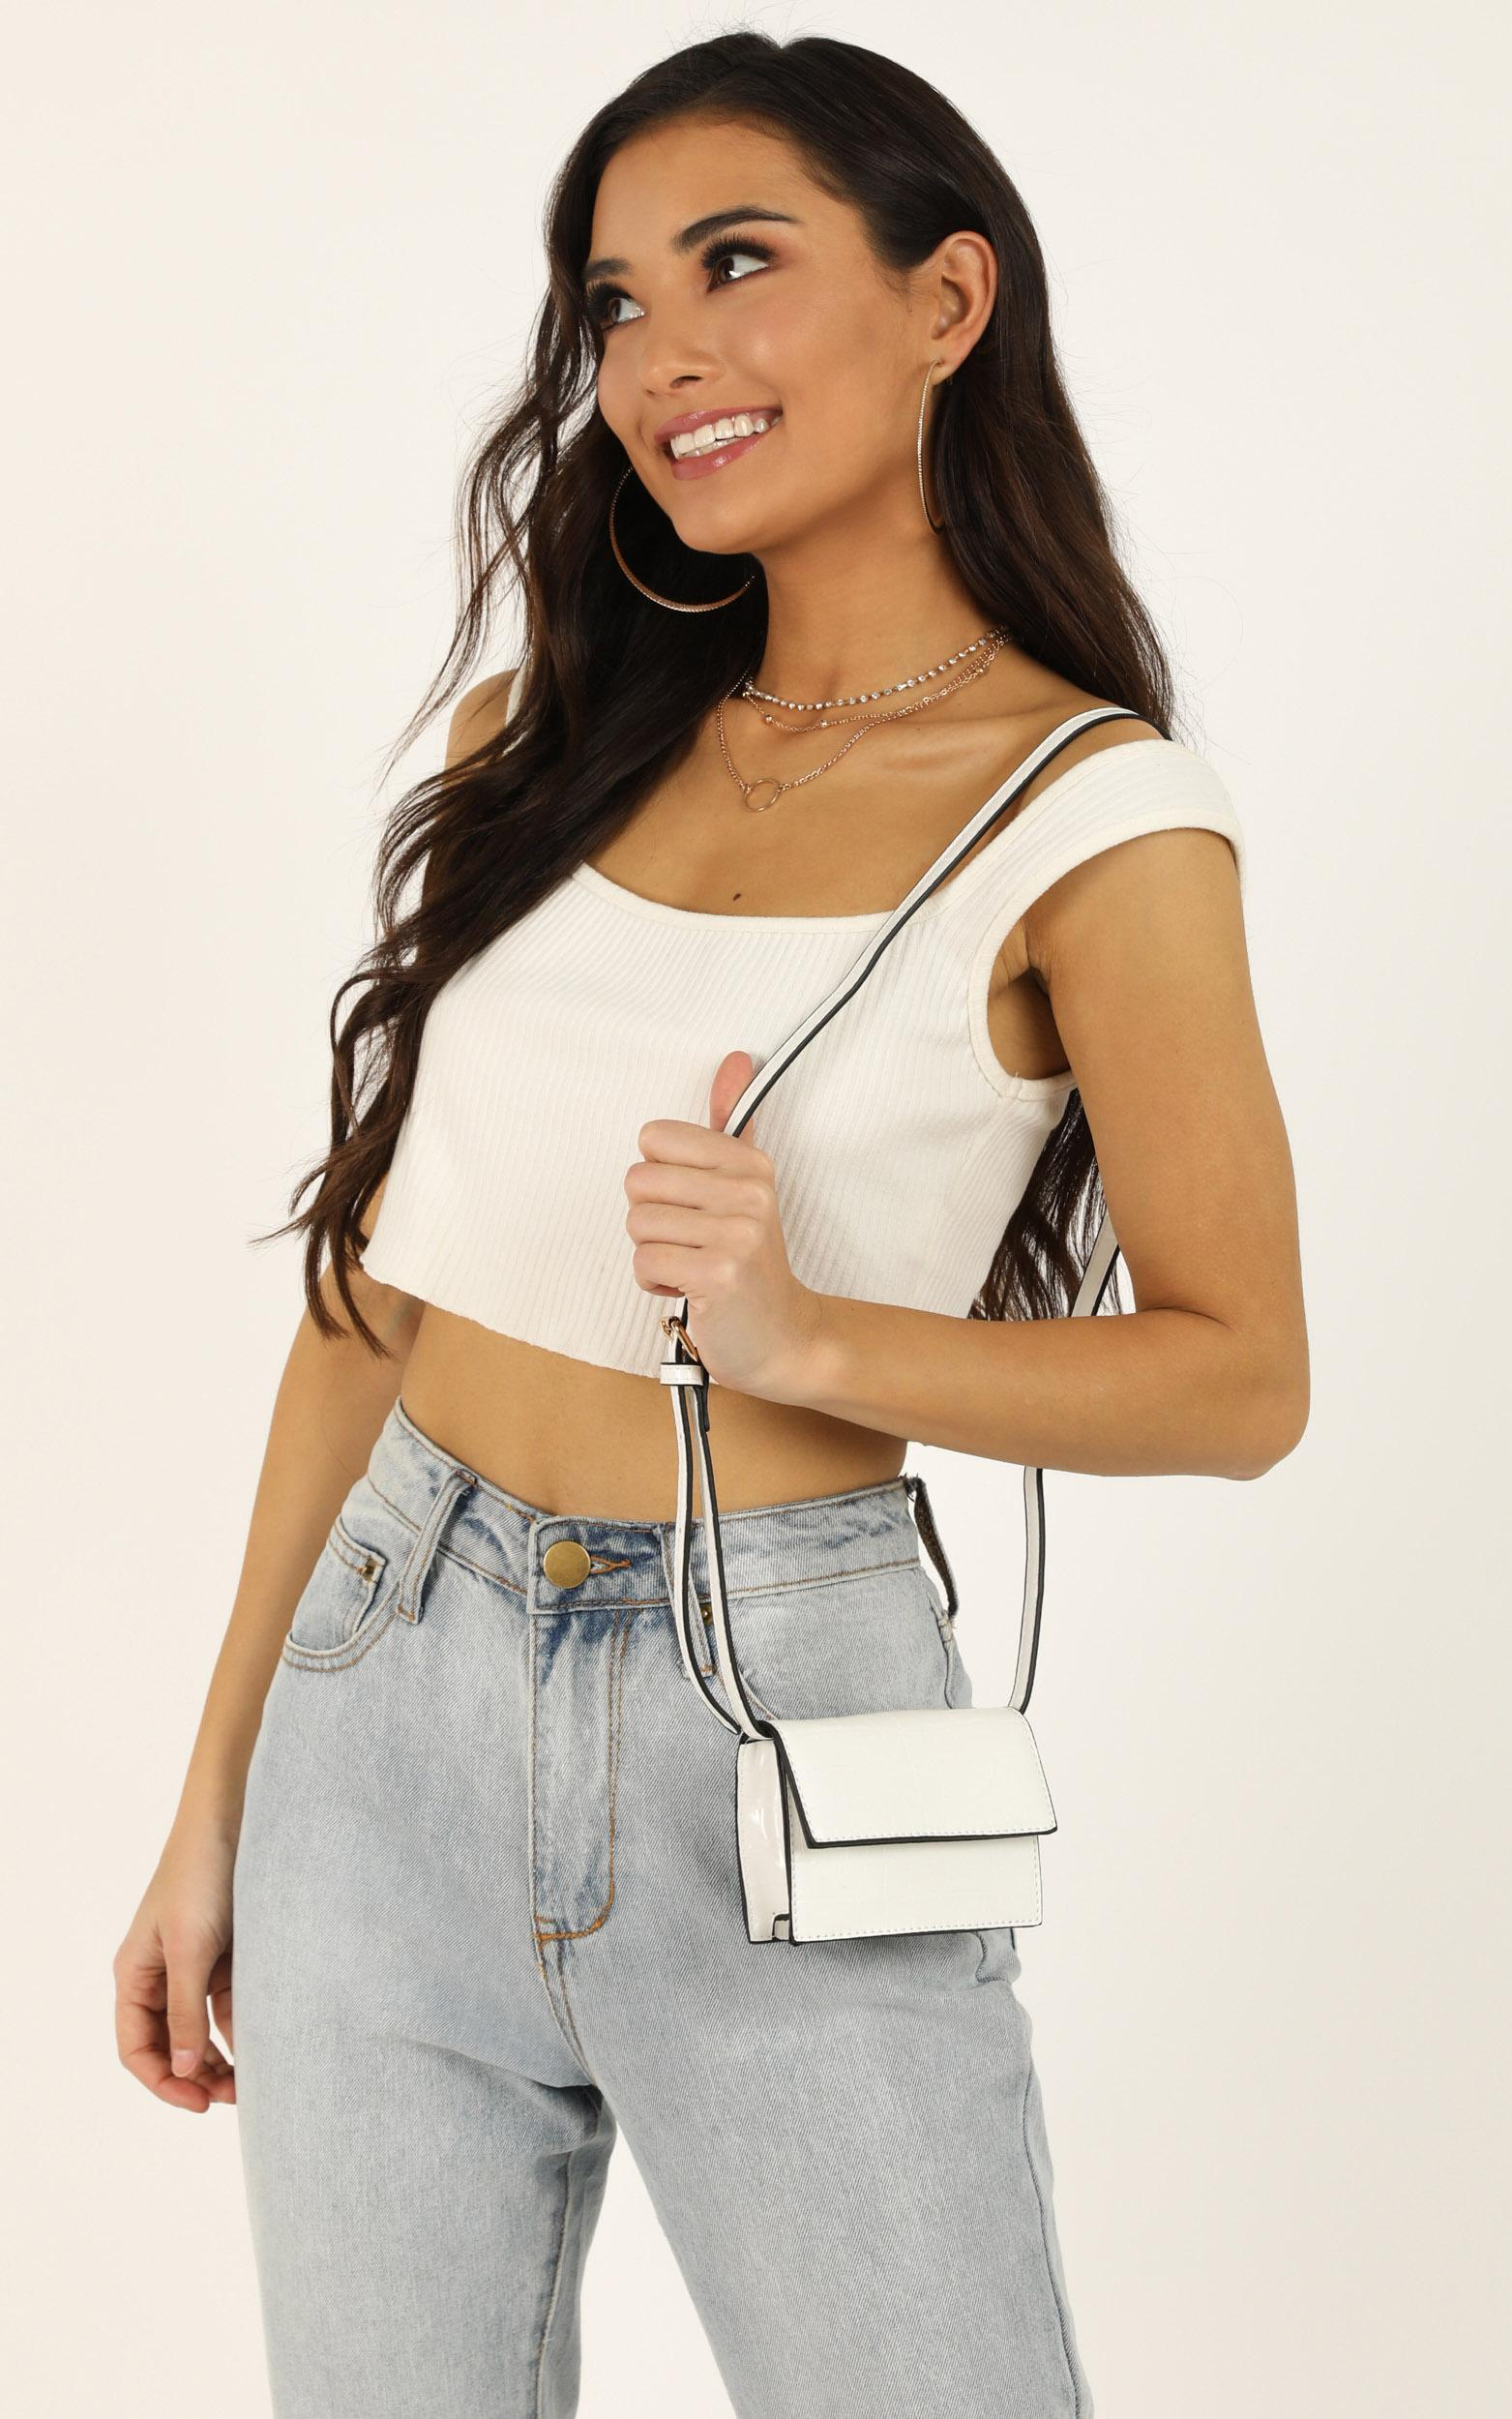 Kourtney Micro Bag In White Croc, White, hi-res image number null